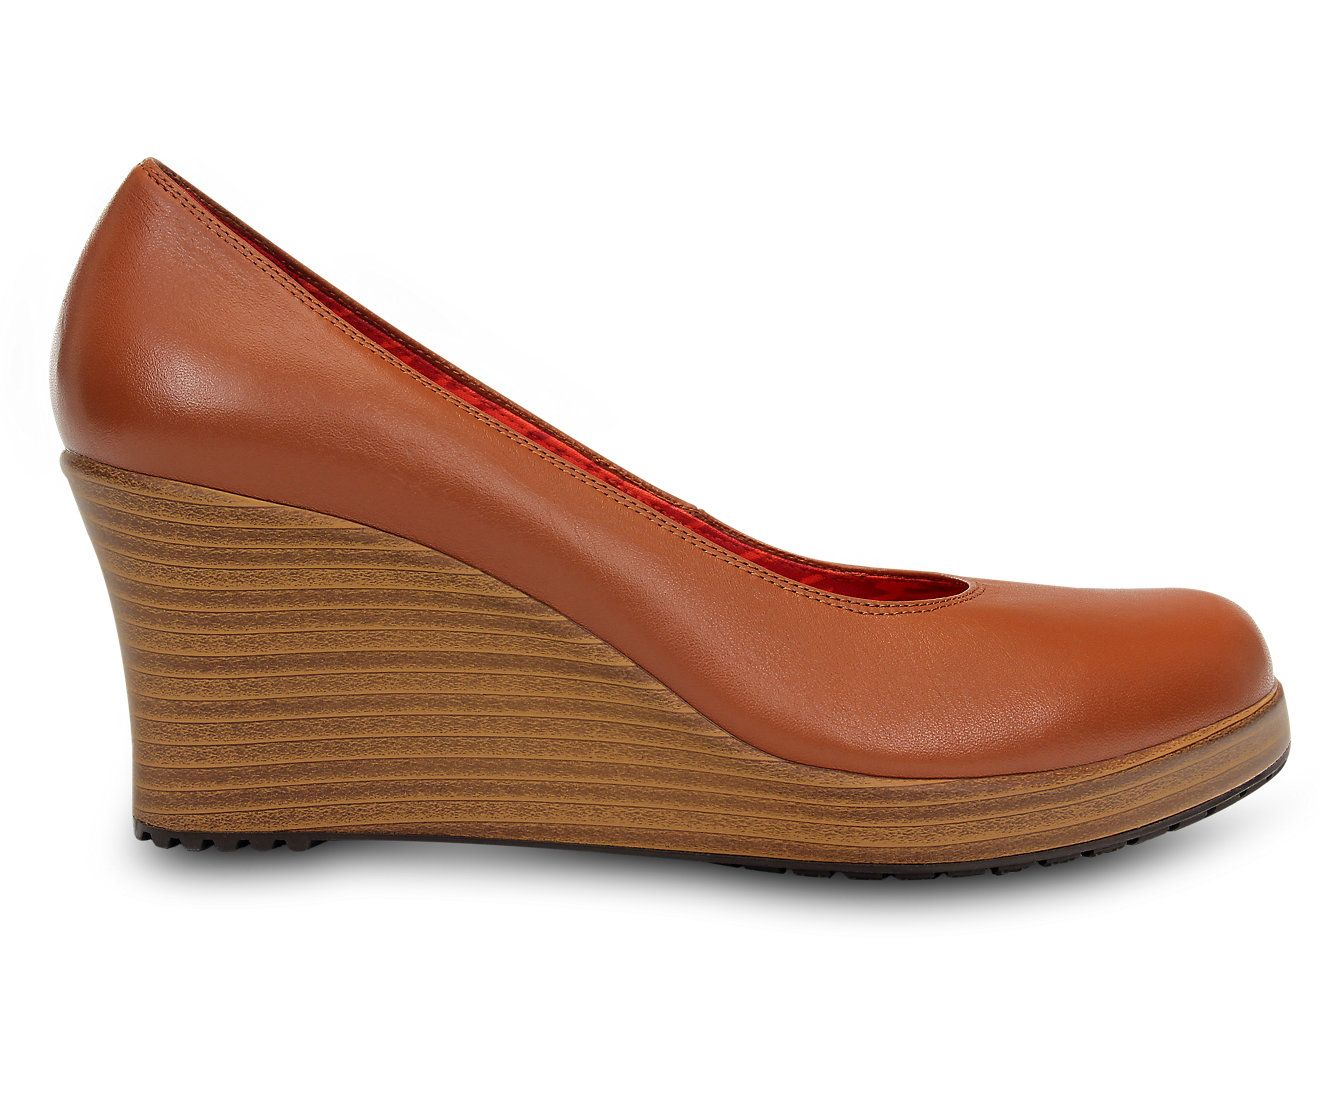 Closed toe wedges, Comfortable wedges